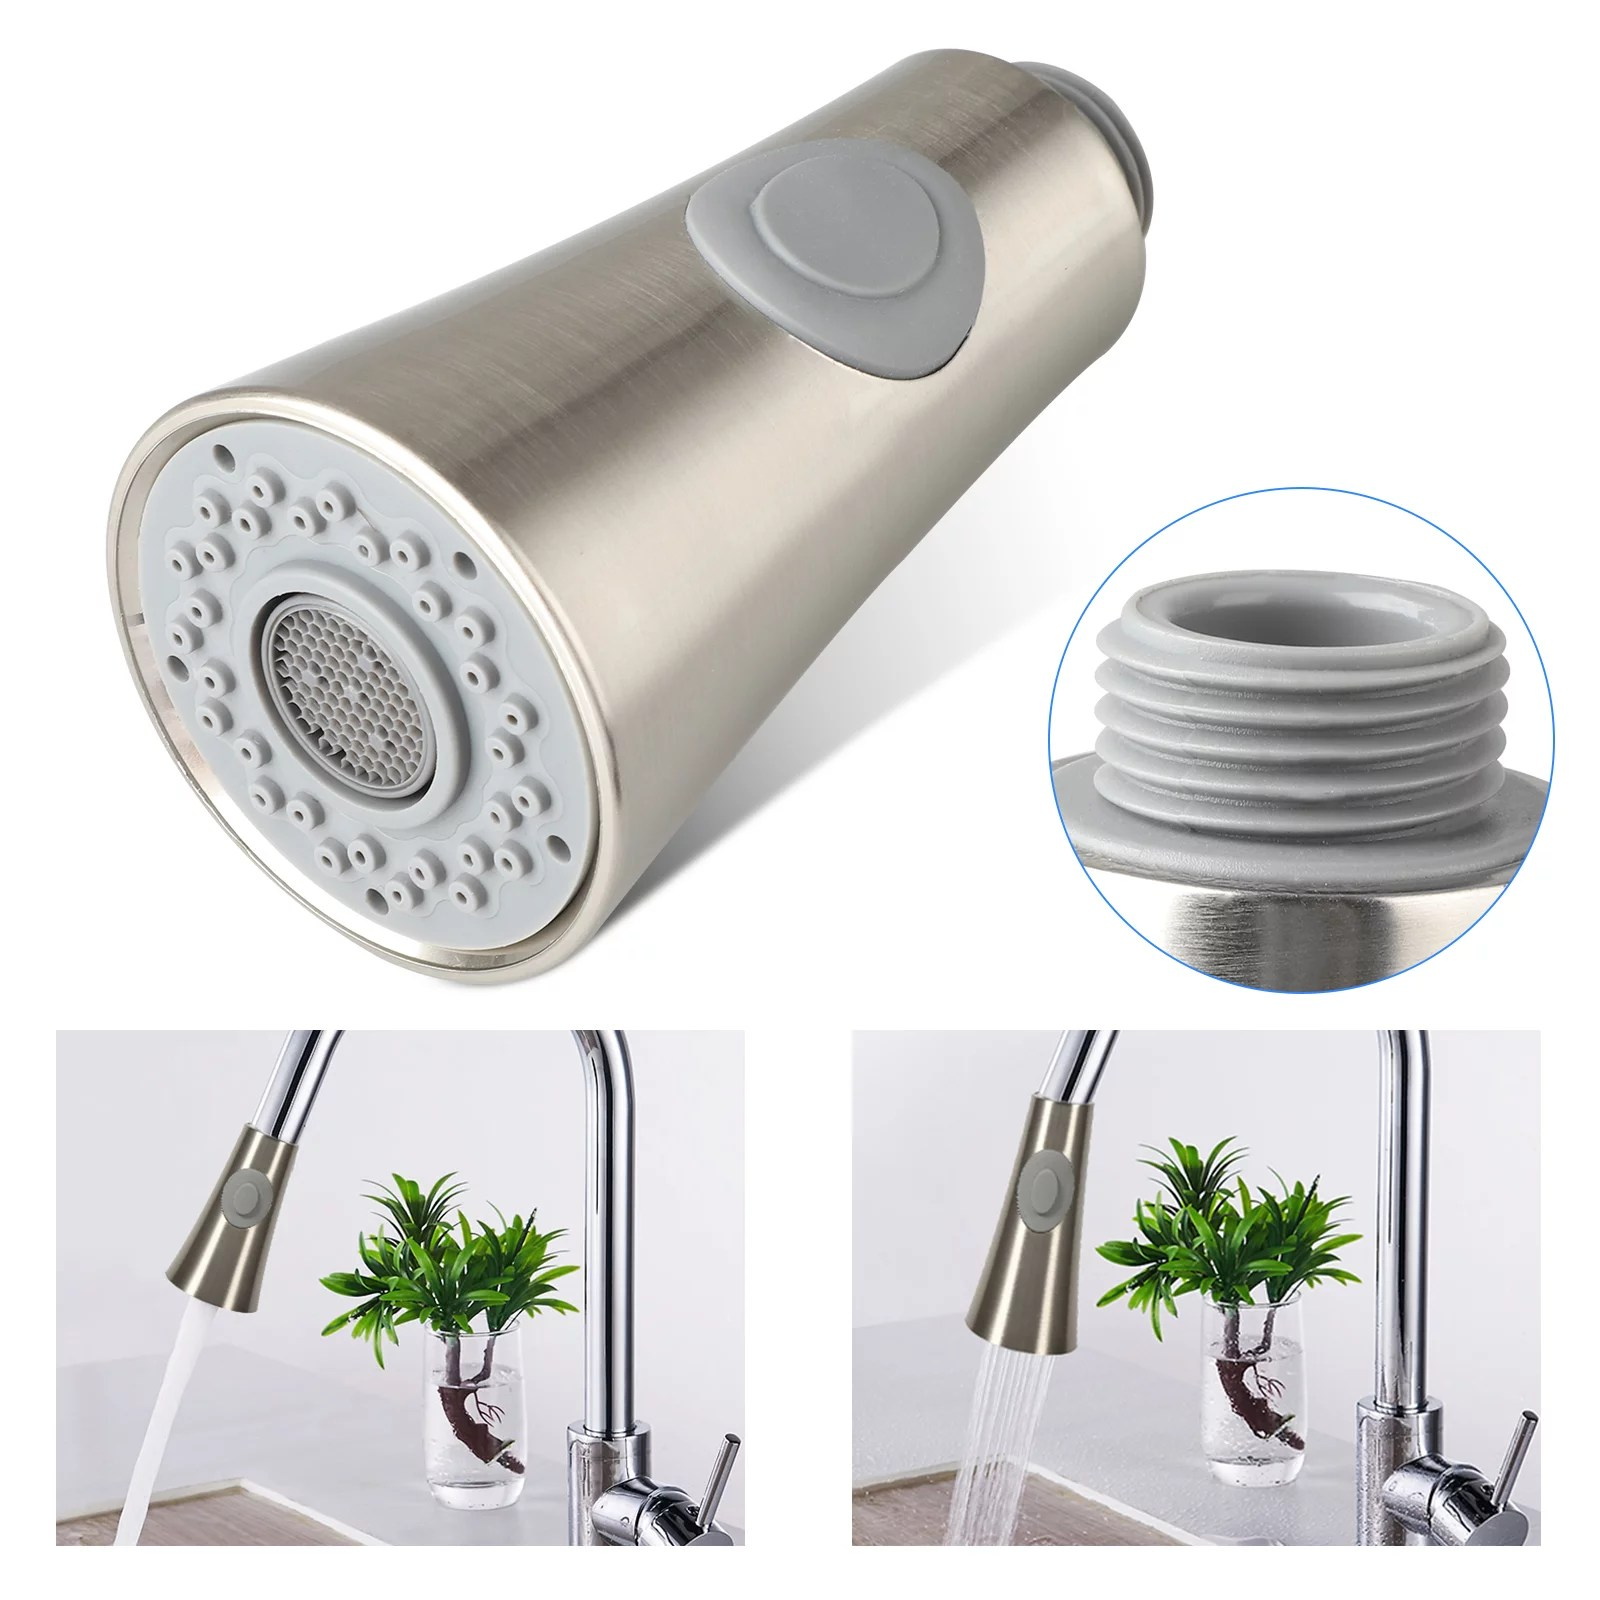 eeekit pull down faucet spray head angle simple kitchen sink faucet sprayer head nozzle pull out hose sprayer replacement part faucet head kitchen